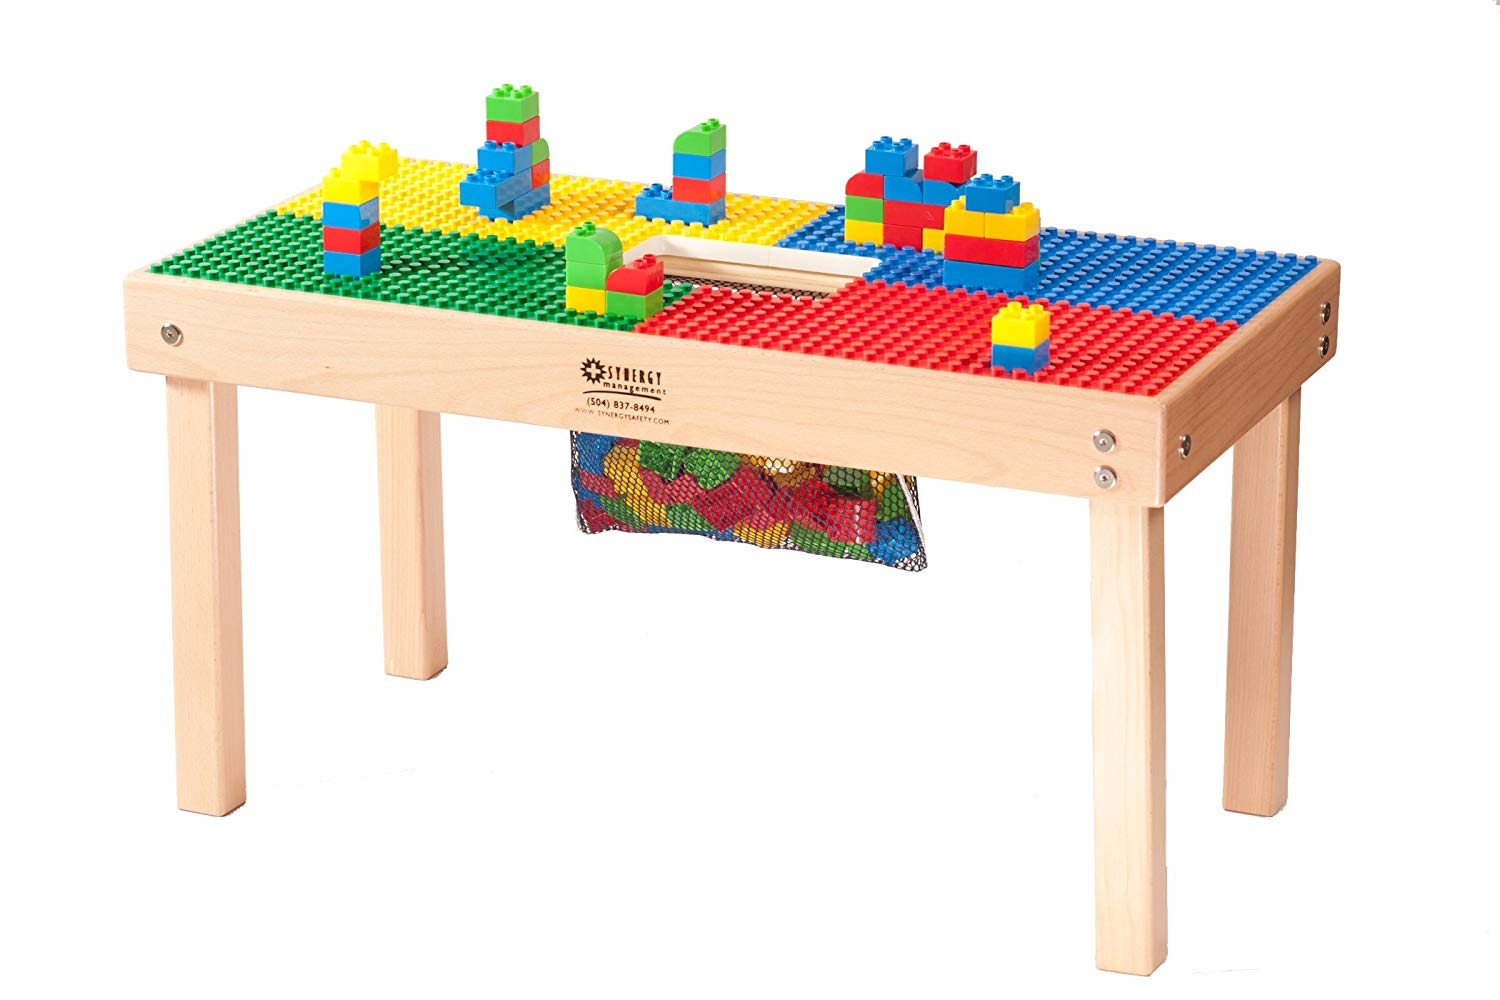 Heavy Duty Duplo Compatible Table with Built-in Lego Storage